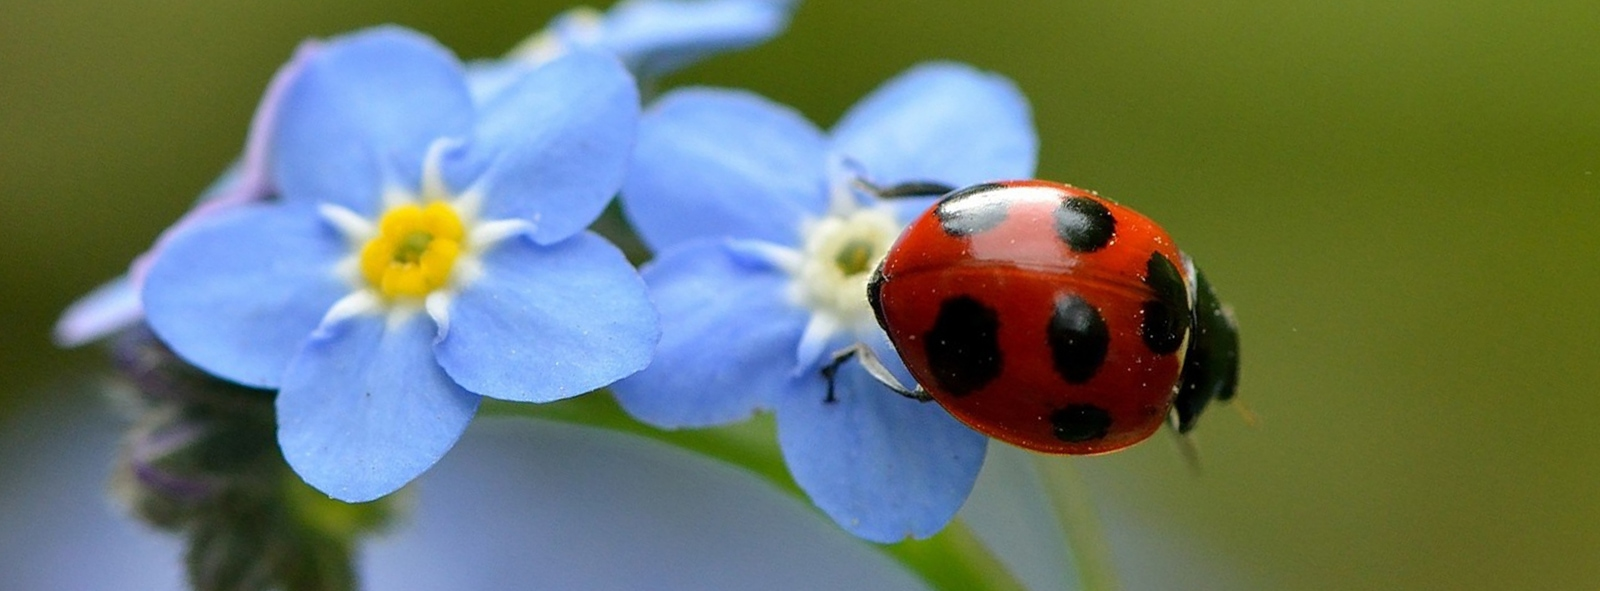 Ladybug Florist Your Florist In Toronto For Flowers And